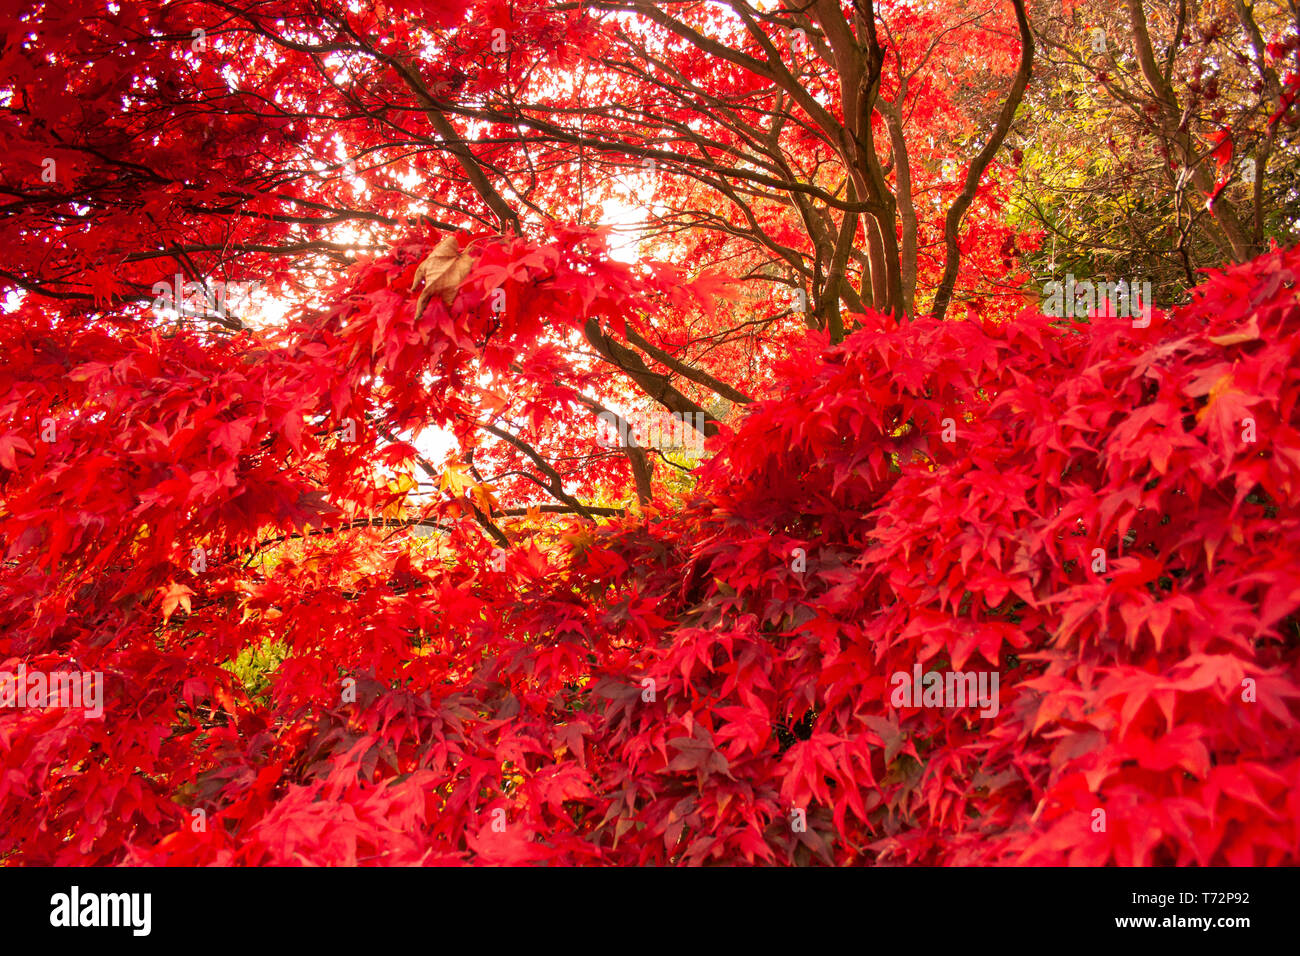 Acer Palmatum Red Baron Japanese Maple Tree In English Garden On